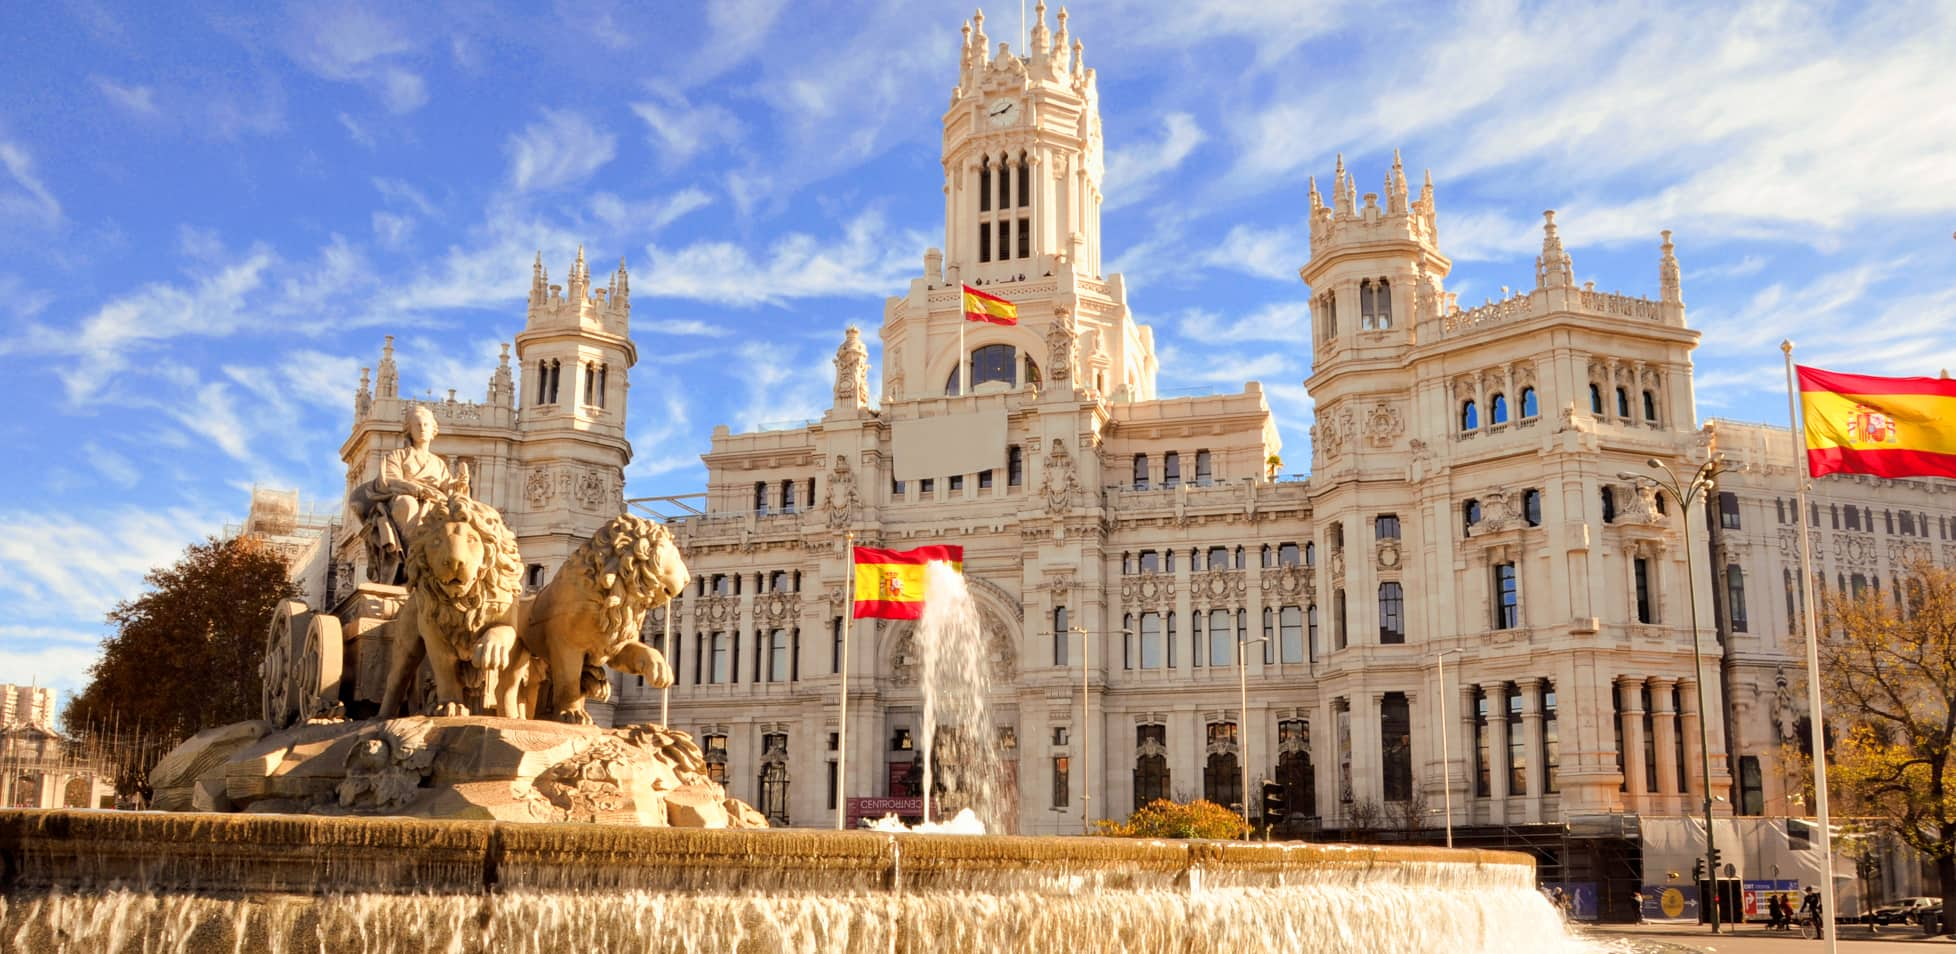 Altanta to Madrid Spain $291 RT Airfares on Iberia / American Airlines BE (Travel January - February 2022)